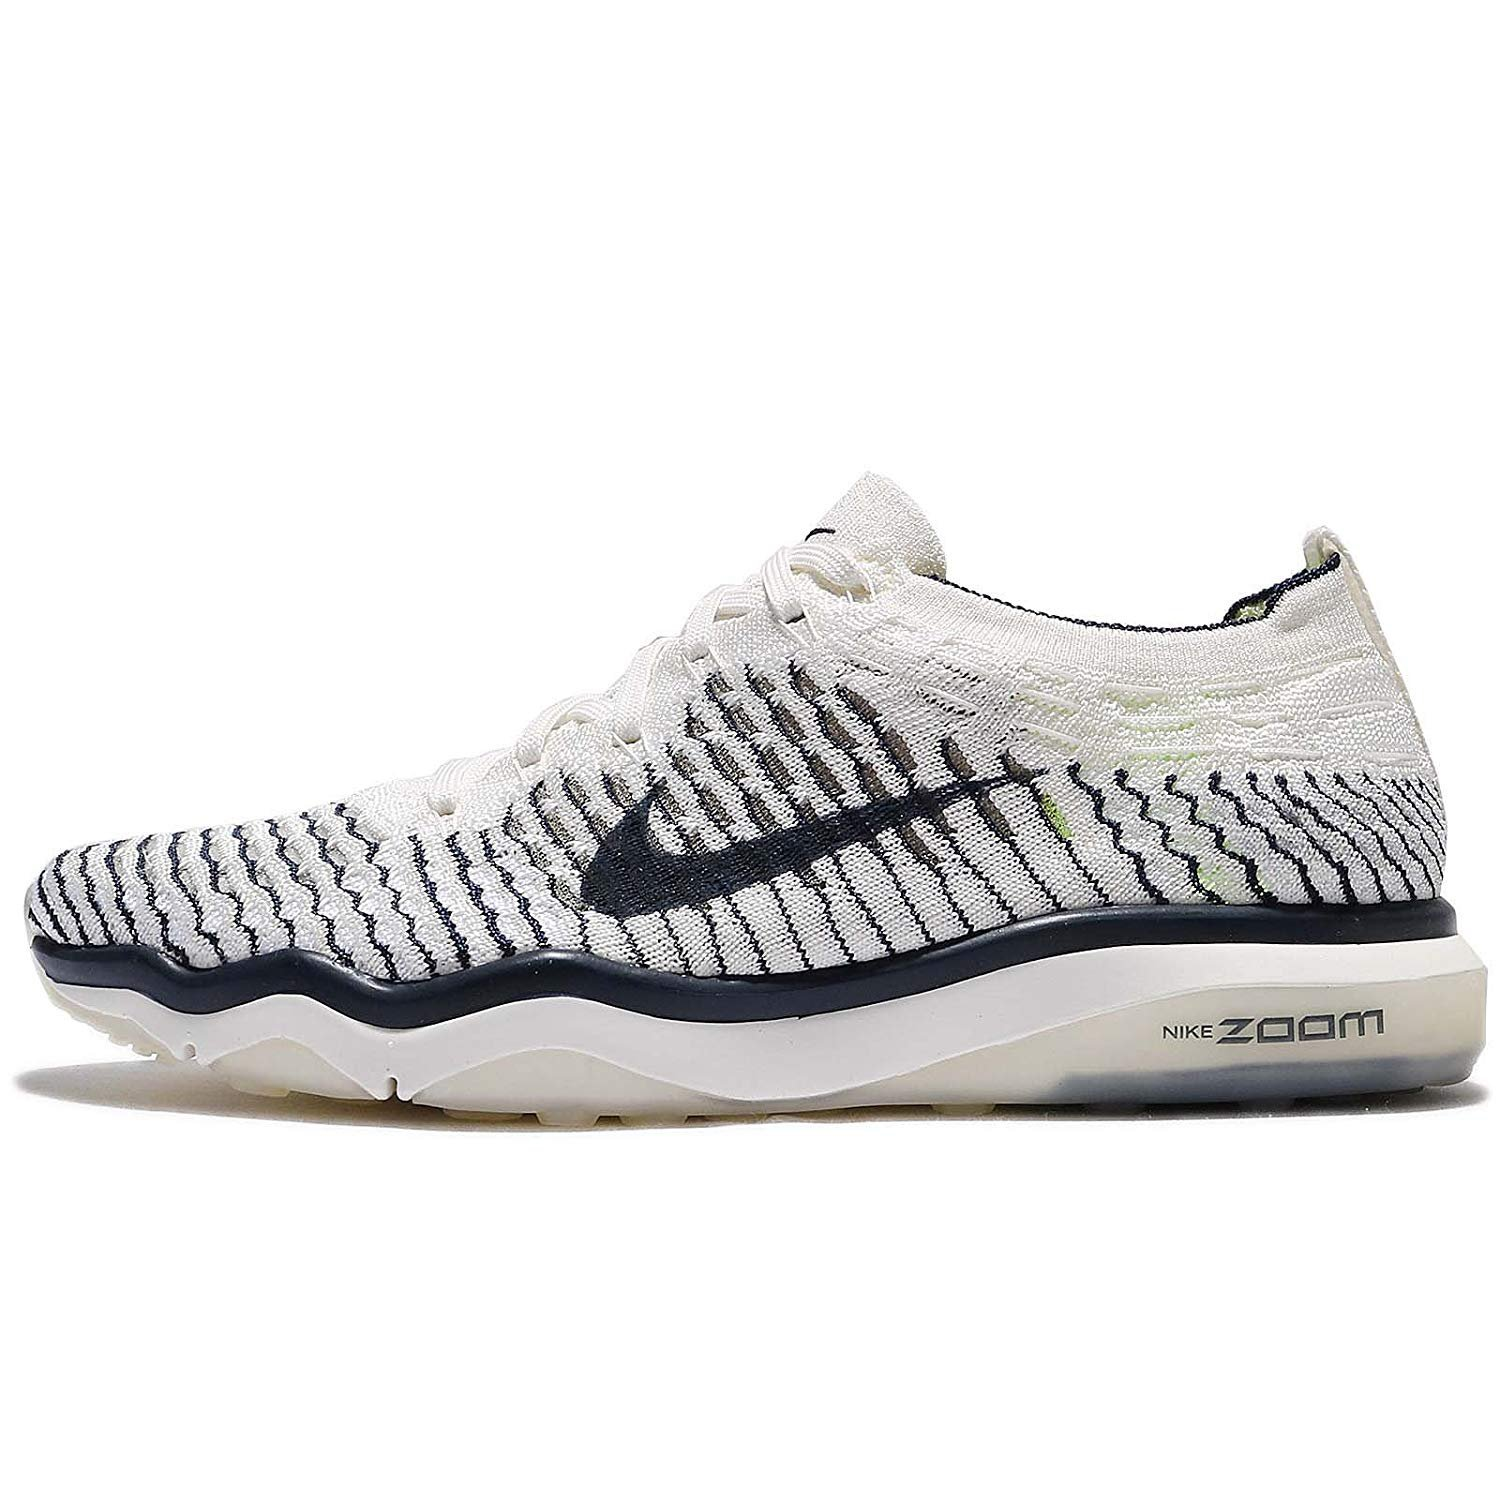 promo code 4827a 8ee12 Nike Zoom Structure Triax+ 14 Running Shoes